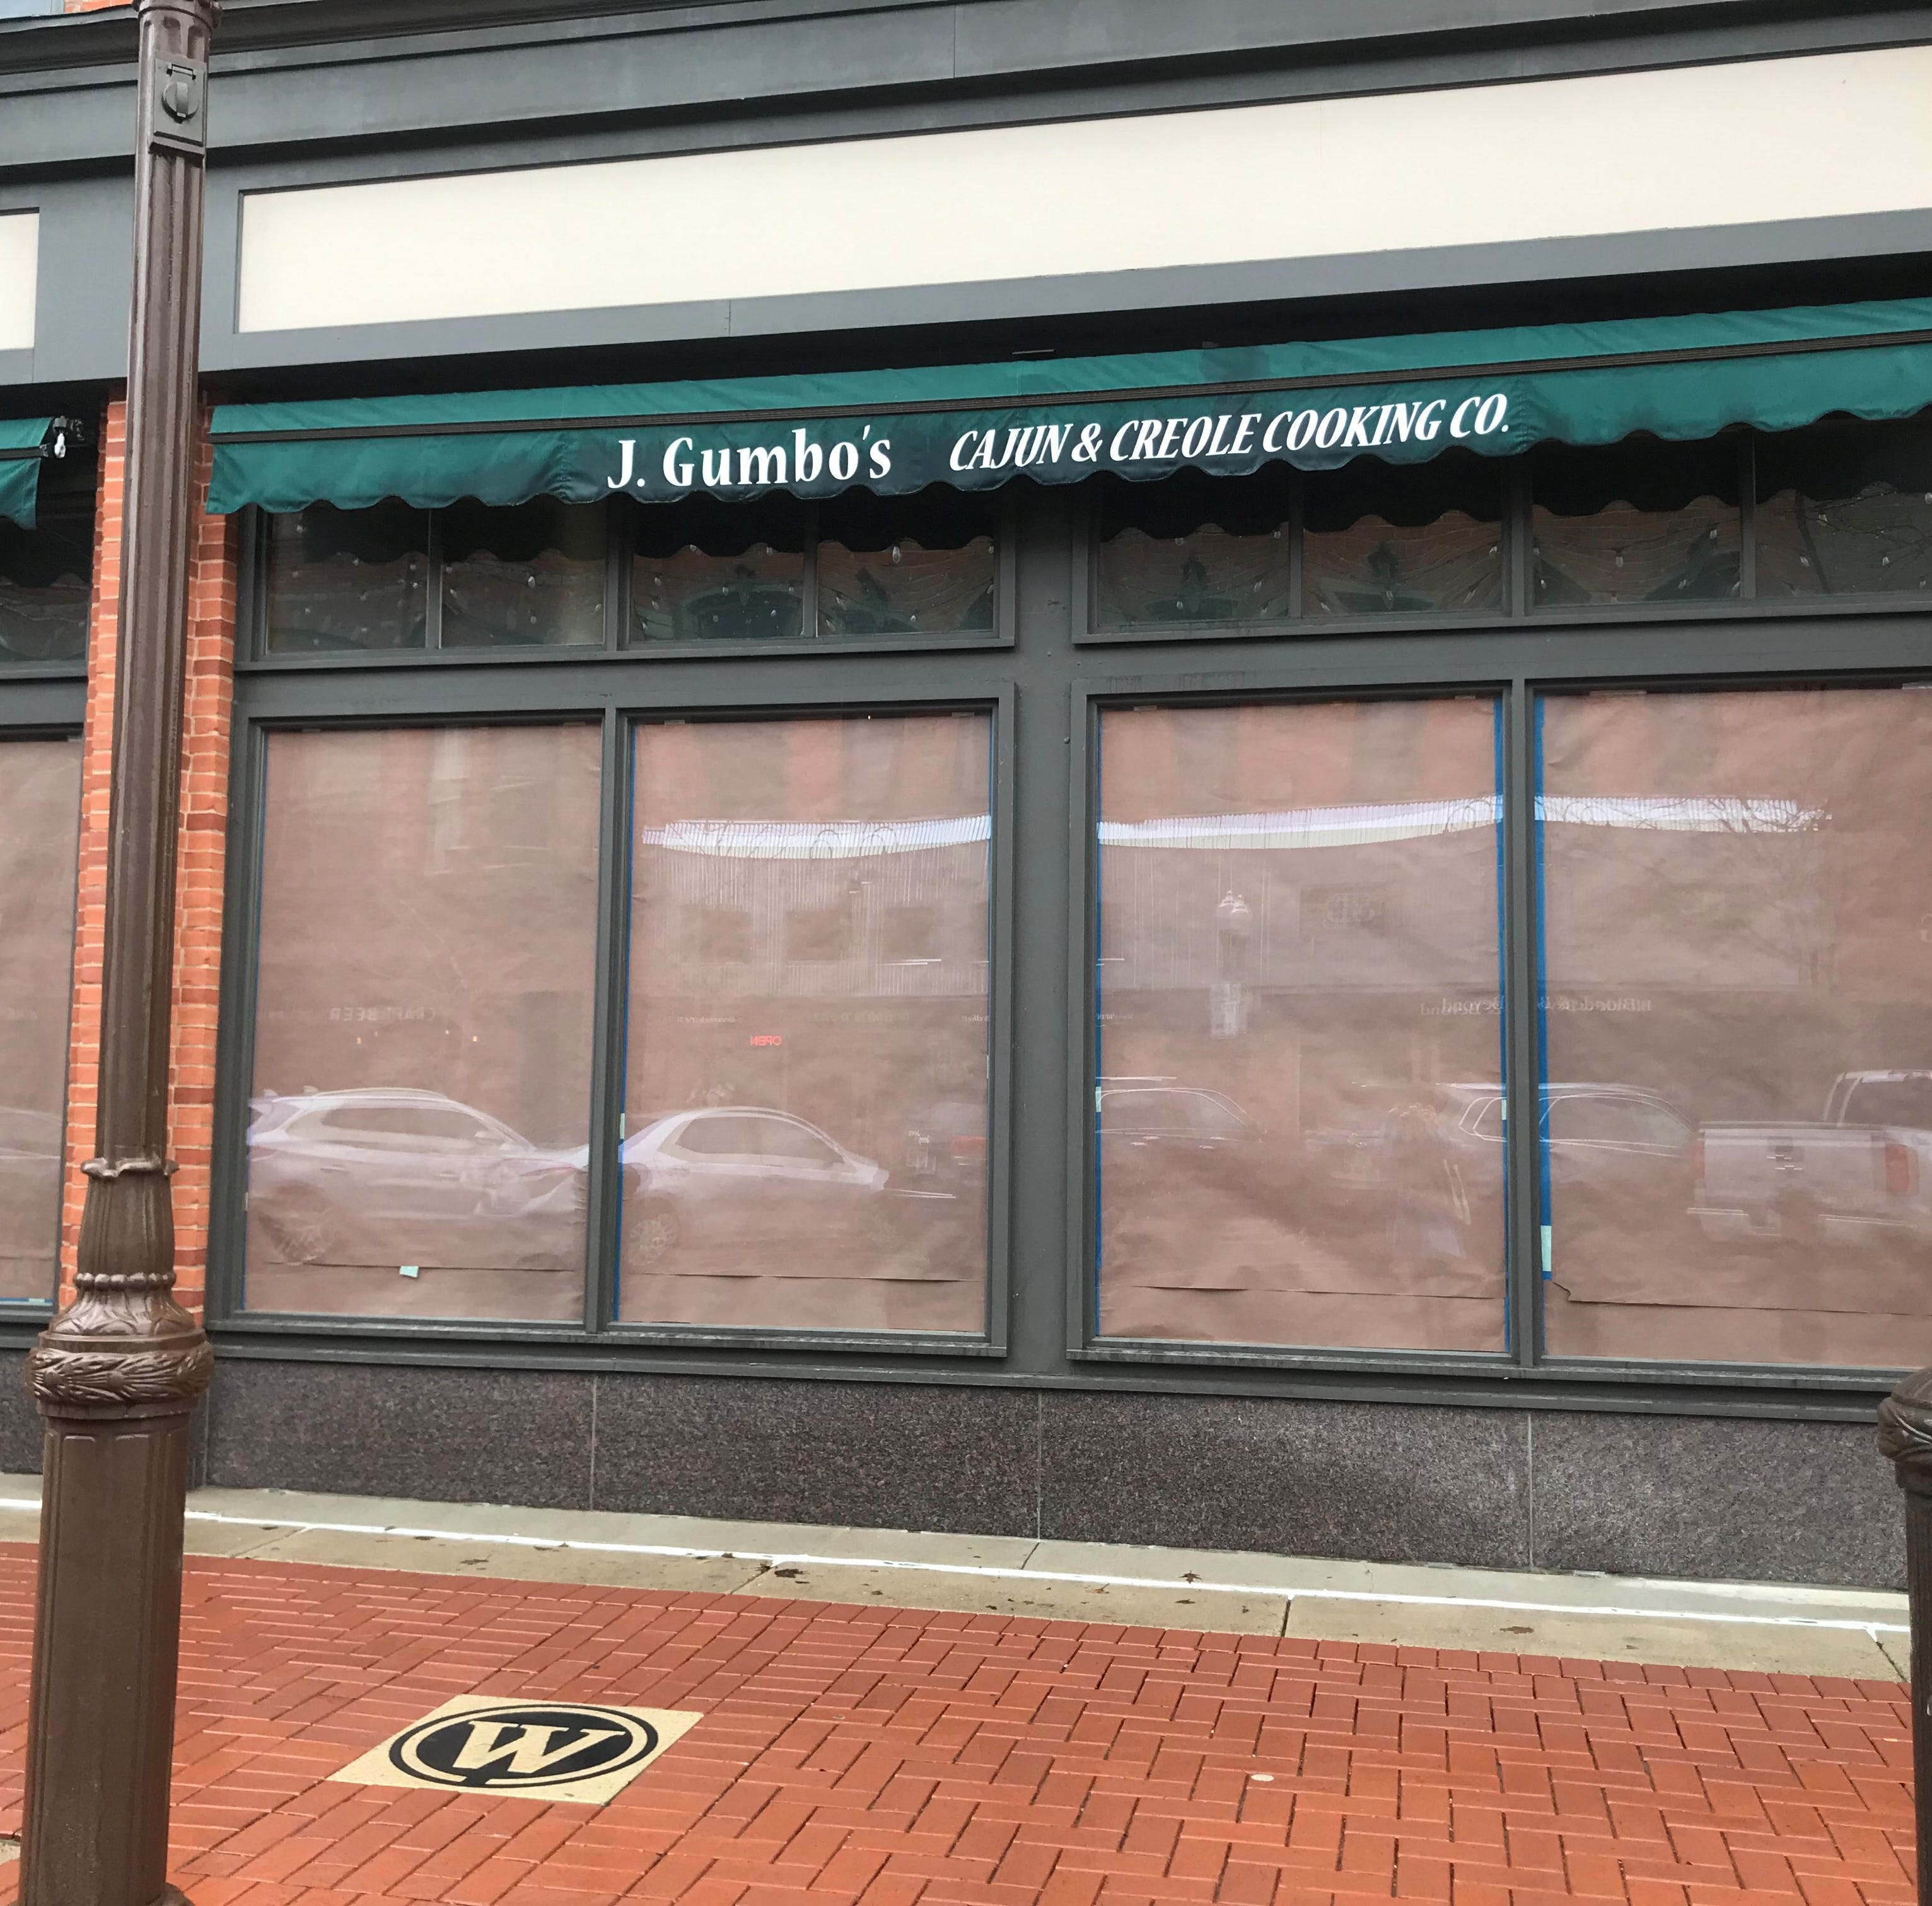 J. Gumbo's owners owed almost $93,000 in rent when they closed the Wausau restaurant, records show